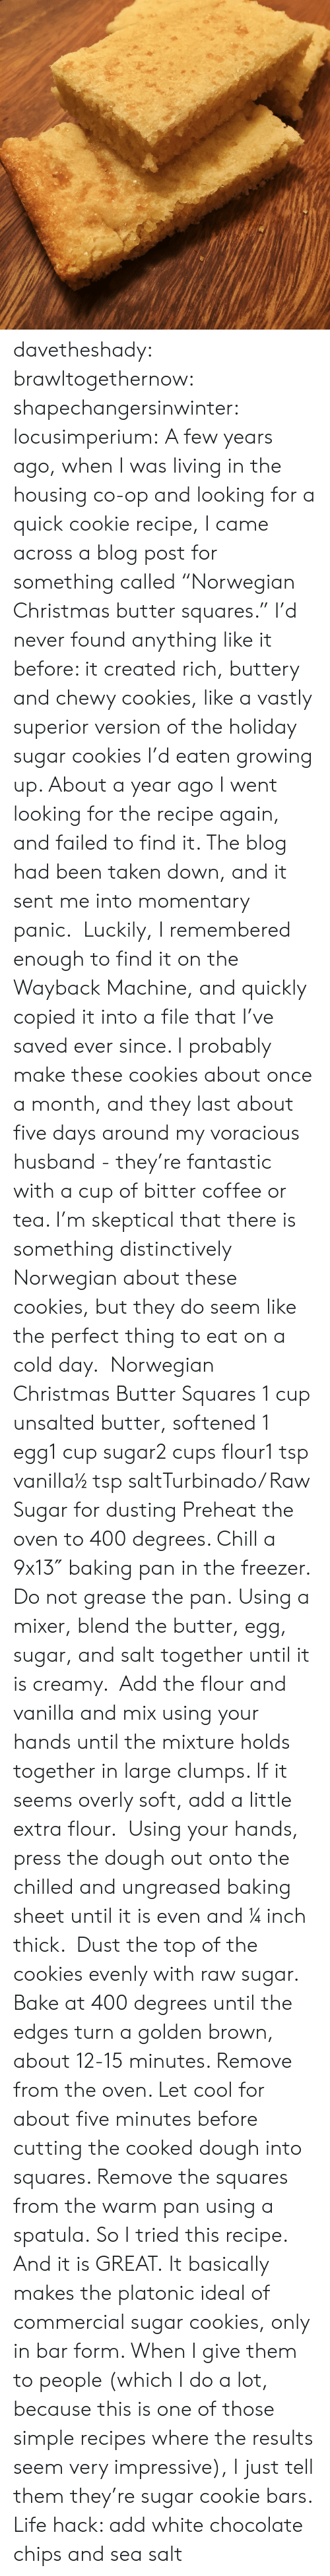 """Chill, Christmas, and Cookies: davetheshady:  brawltogethernow:  shapechangersinwinter:  locusimperium:  A few years ago, when I was living in the housing co-op and looking for a quick cookie recipe, I came across a blog post for something called""""Norwegian Christmas butter squares."""" I'd never found anything like it before: it created rich, buttery and chewy cookies, like a vastly superior version of the holiday sugar cookies I'd eaten growing up. About a year ago I went looking for the recipe again, and failed to find it. The blog had been taken down, and it sent me into momentary panic. Luckily, I remembered enough to find it on the Wayback Machine, and quickly copied it into a file that I've saved ever since. I probably make these cookies about once a month, and they last about five days around my voracious husband - they're fantastic with a cup of bitter coffee or tea. I'm skeptical that there is something distinctively Norwegian about these cookies, but they do seem like the perfect thing to eat on a cold day.  Norwegian Christmas Butter Squares 1 cup unsalted butter, softened 1 egg1 cup sugar2 cups flour1 tsp vanilla½ tsp saltTurbinado/ Raw Sugar for dusting Preheat the oven to 400 degrees. Chill a 9x13″ baking pan in the freezer. Do not grease the pan. Using a mixer, blend the butter, egg, sugar, and salt together until it is creamy. Add the flour and vanilla and mix using your hands until the mixture holds together in large clumps. If it seems overly soft, add a little extra flour. Using your hands, press the dough out onto the chilled and ungreased baking sheet until it is even and ¼ inch thick. Dust the top of the cookies evenly with raw sugar. Bake at 400 degrees until the edges turn a golden brown, about 12-15 minutes. Remove from the oven. Let cool for about five minutes before cutting the cooked dough into squares. Remove the squares from the warm pan using a spatula.    So I tried this recipe. And it is GREAT. It basically makes the platonic ideal of c"""